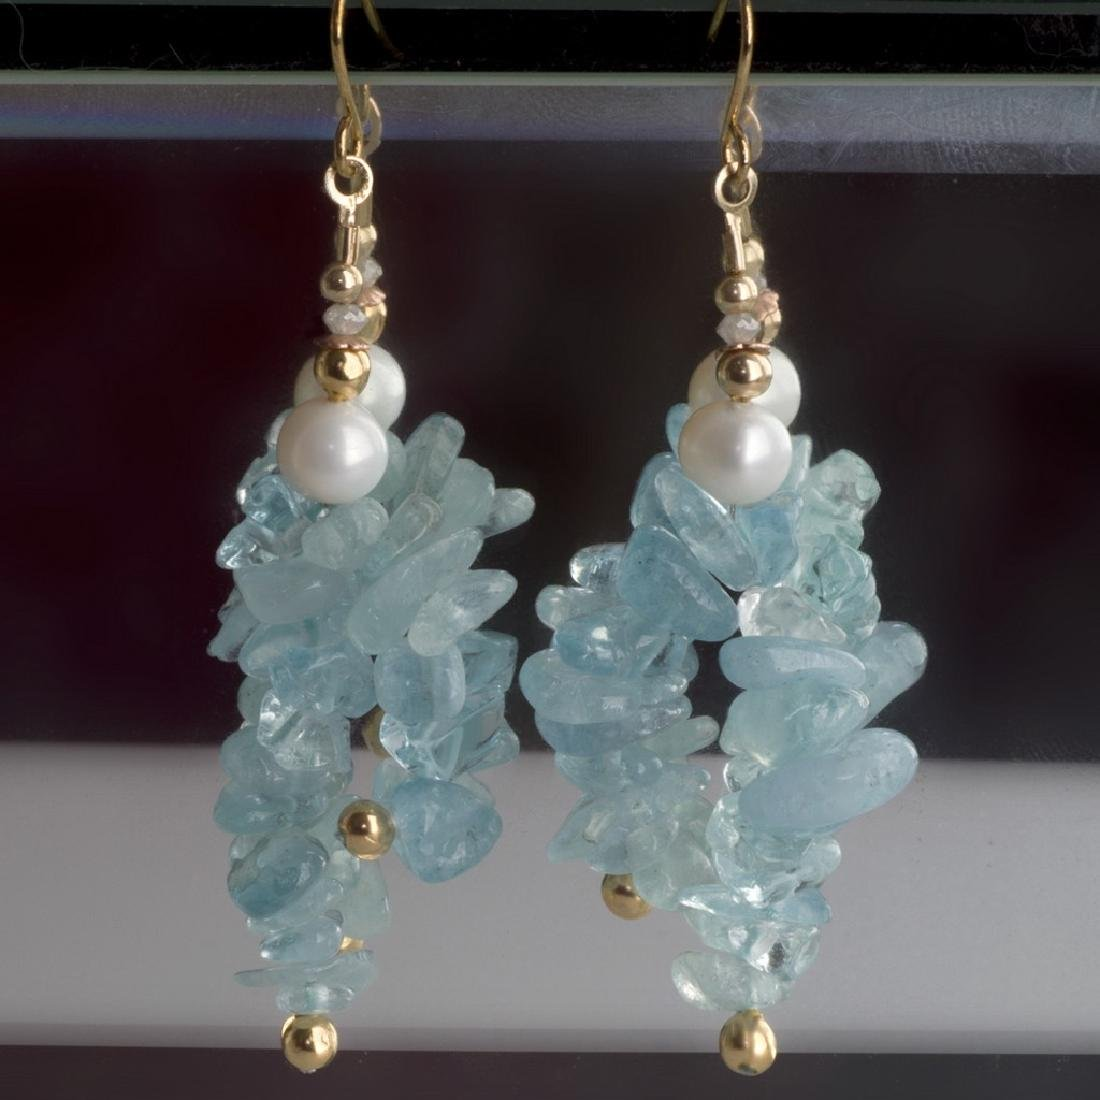 14K Art Nouveux Style Aquamarine Earrings with Pearls